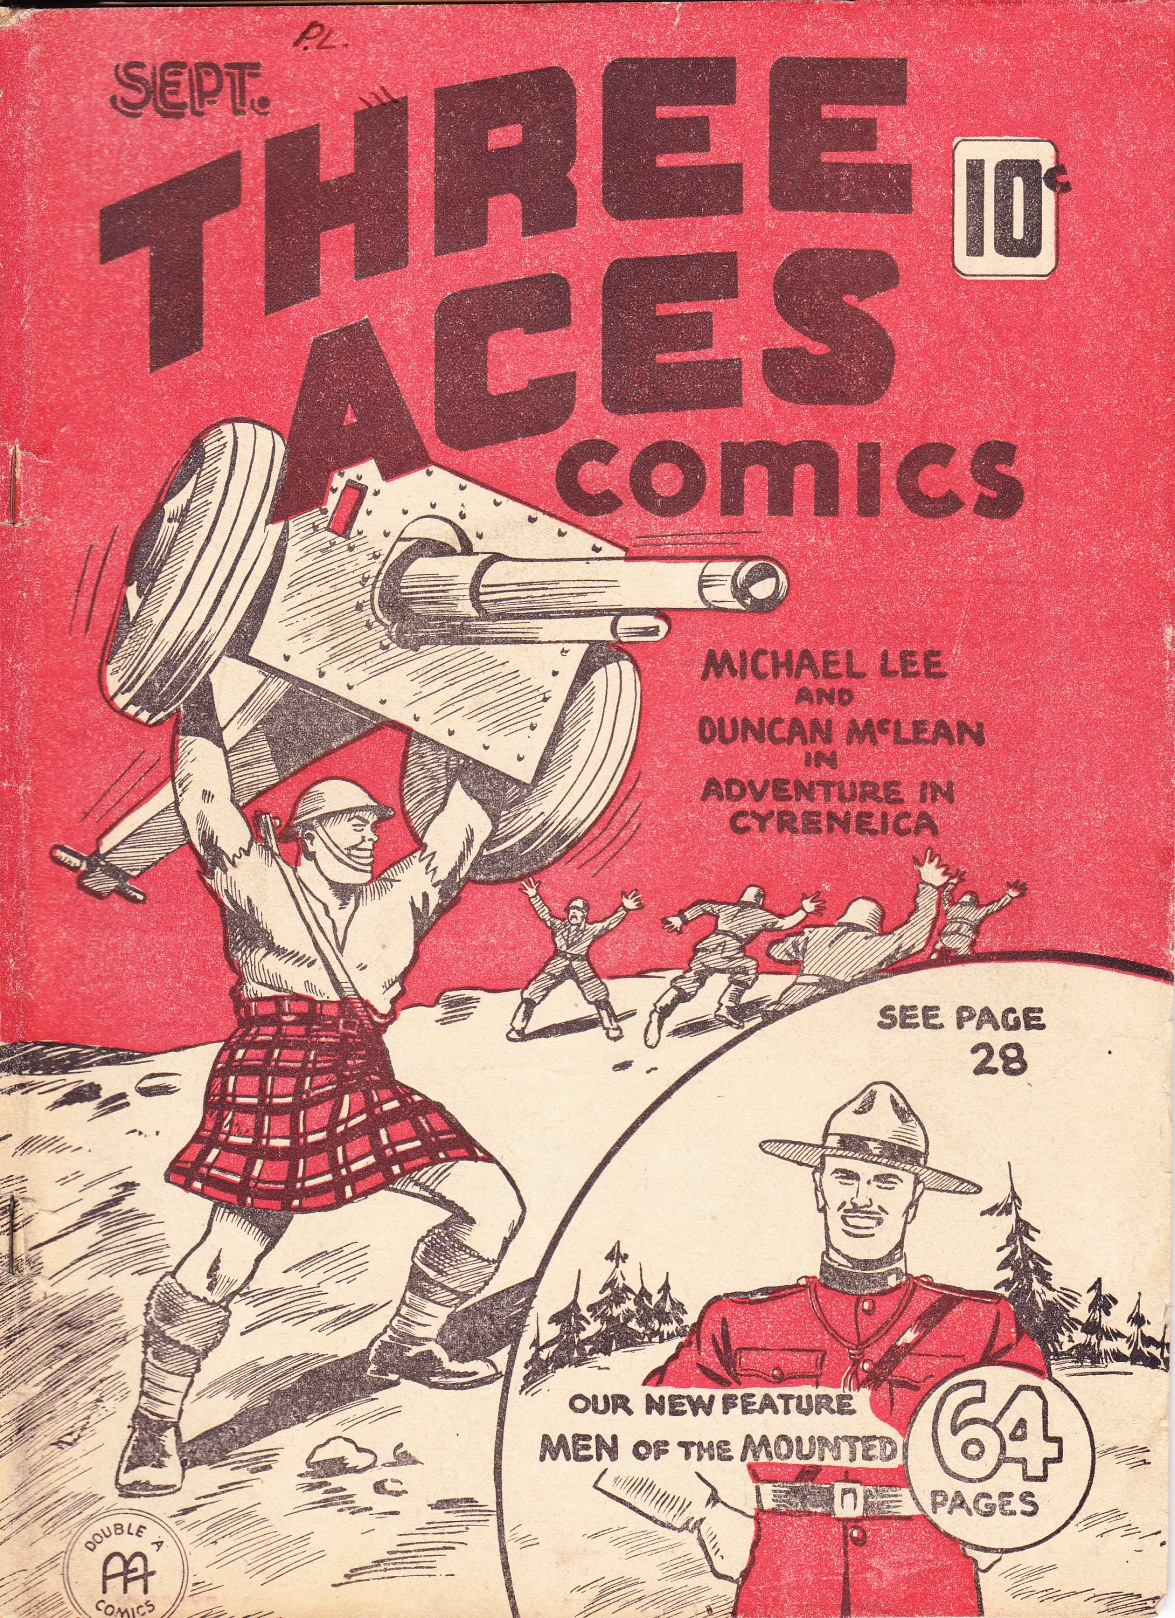 C:\Users\Robert\Documents\CARTOONING ILLUSTRATION ANIMATION\IMAGE CARTOON\IMAGE CARTOON M\MICHAEL LEE, Three Aces, 1-2, J-F 1942 _0003.jpg